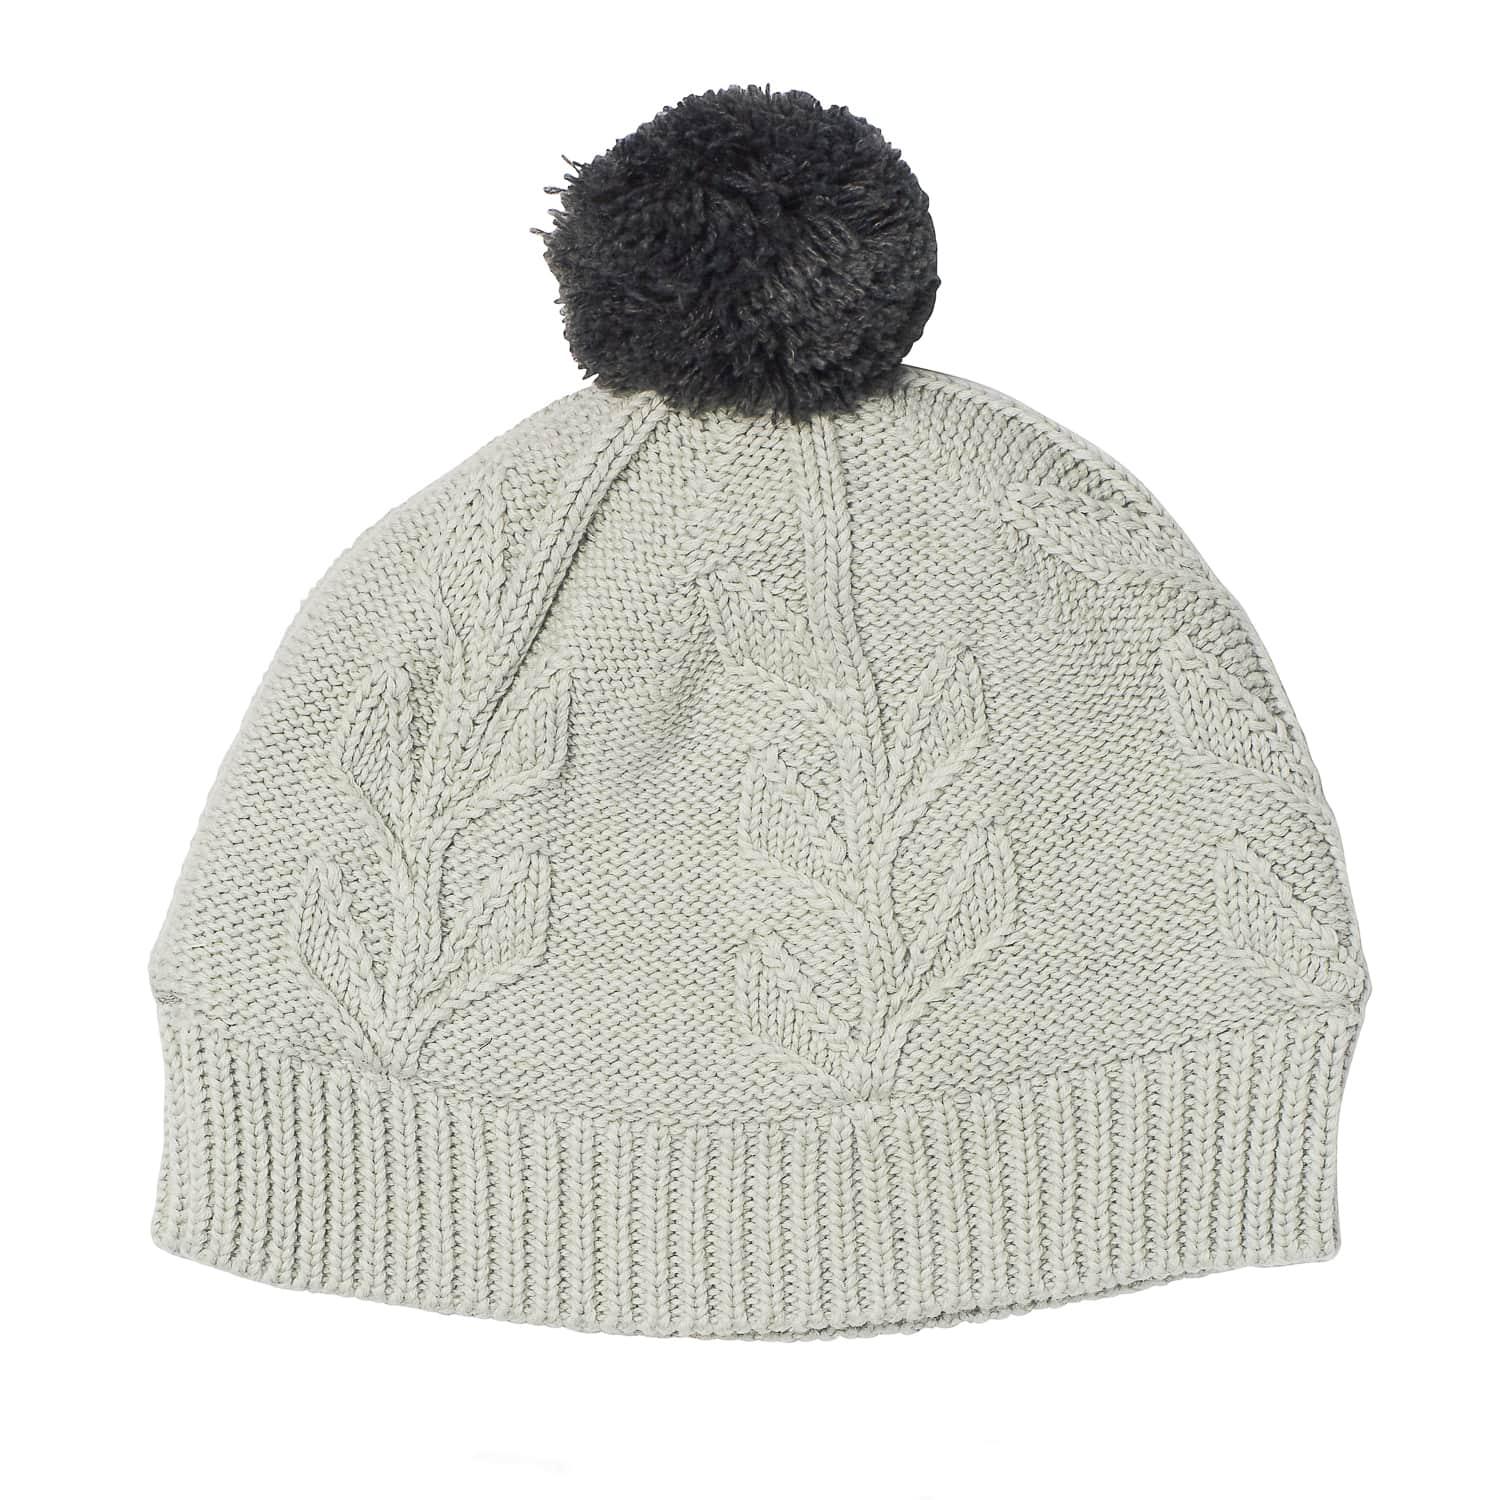 Acorn Kids Vines Infant Beanie Mitten Pack Grey Beanie